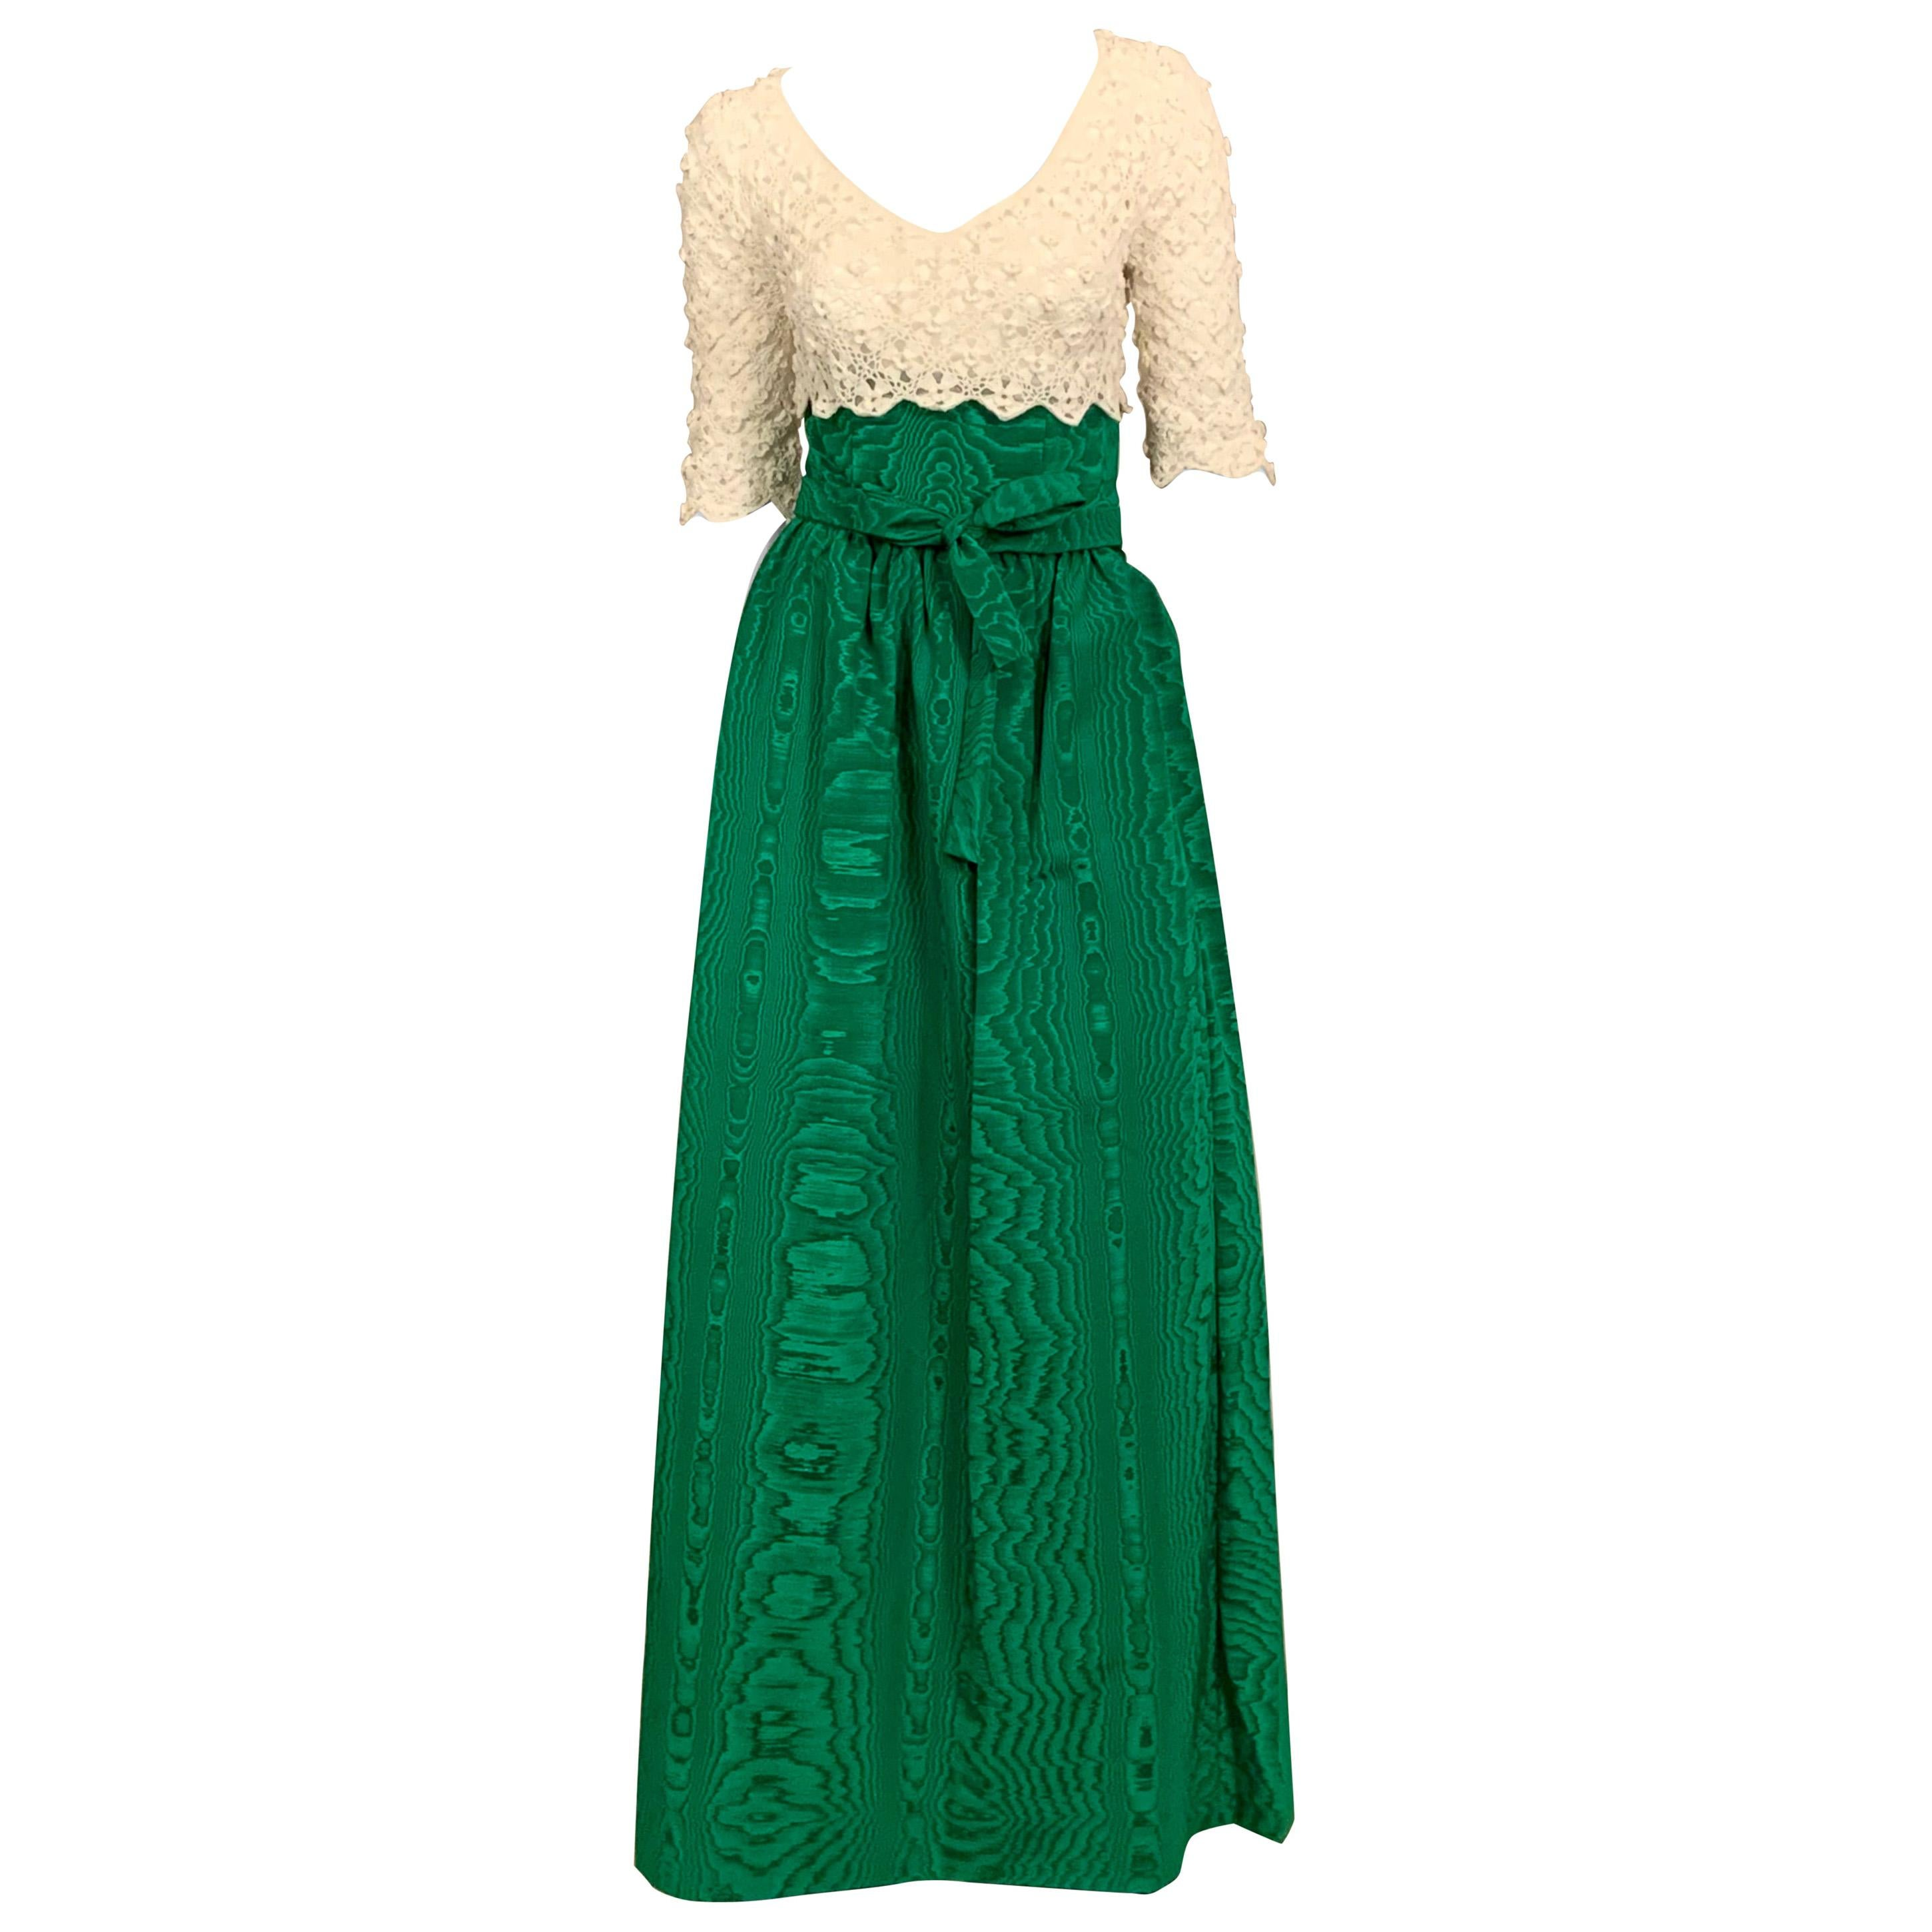 Sybil Connolly Couture Two Piece Dress  Irish Lace and Kelly Green Silk